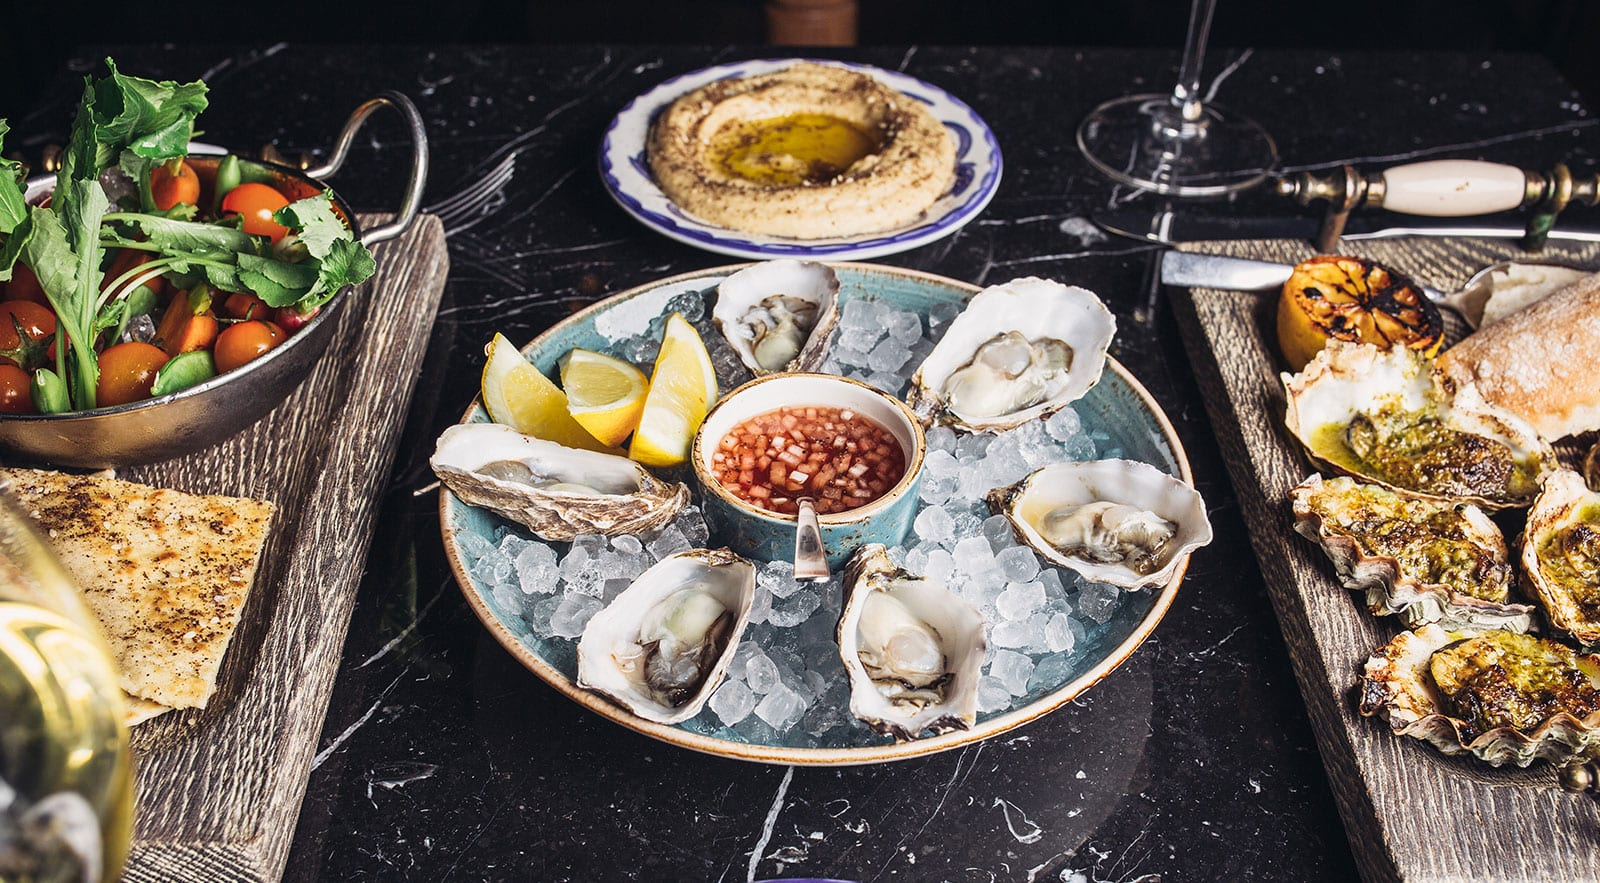 a table with plates of raw oysters, grilled oysters and hummus